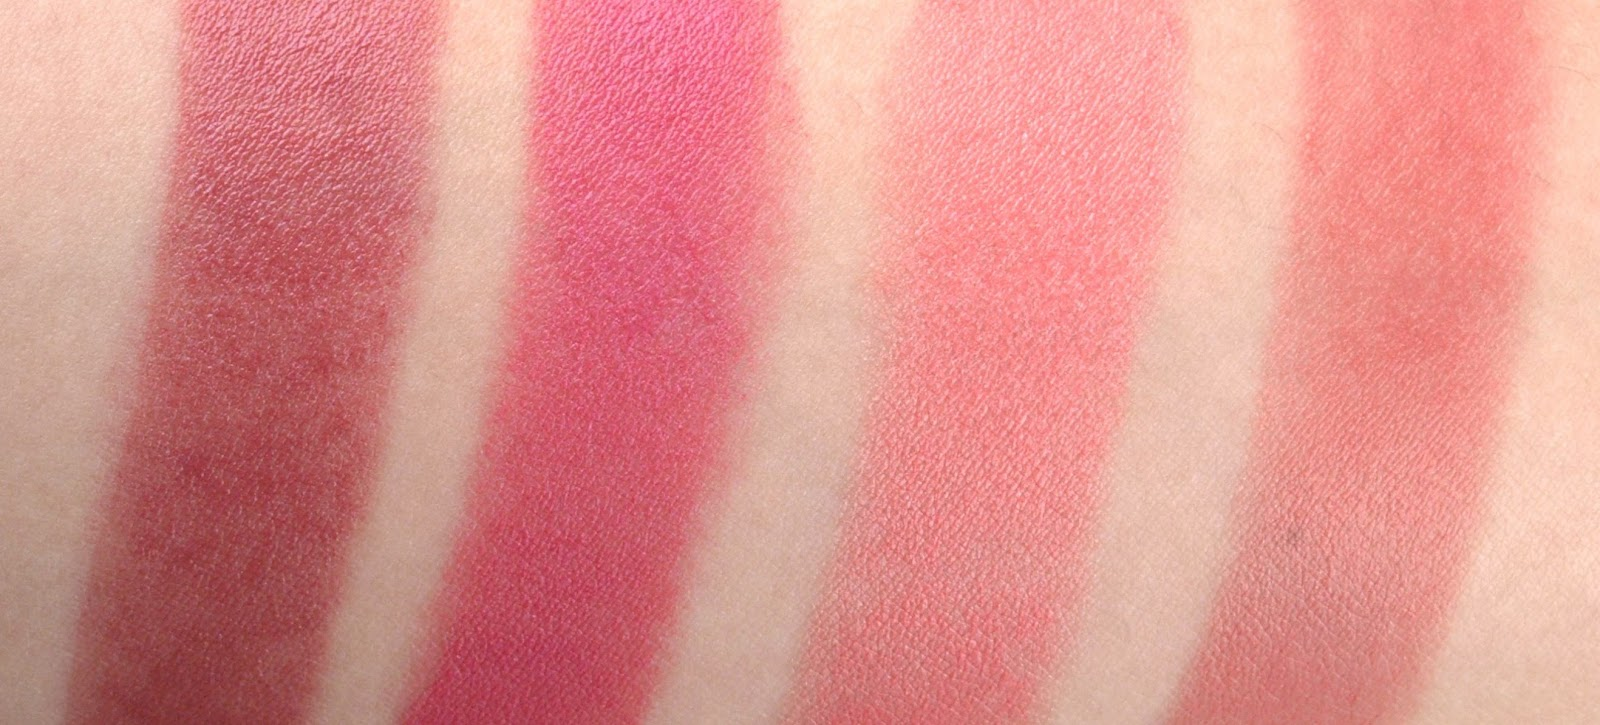 Clinique Chubby Stick Cheek Color Balm: Review and Swatches